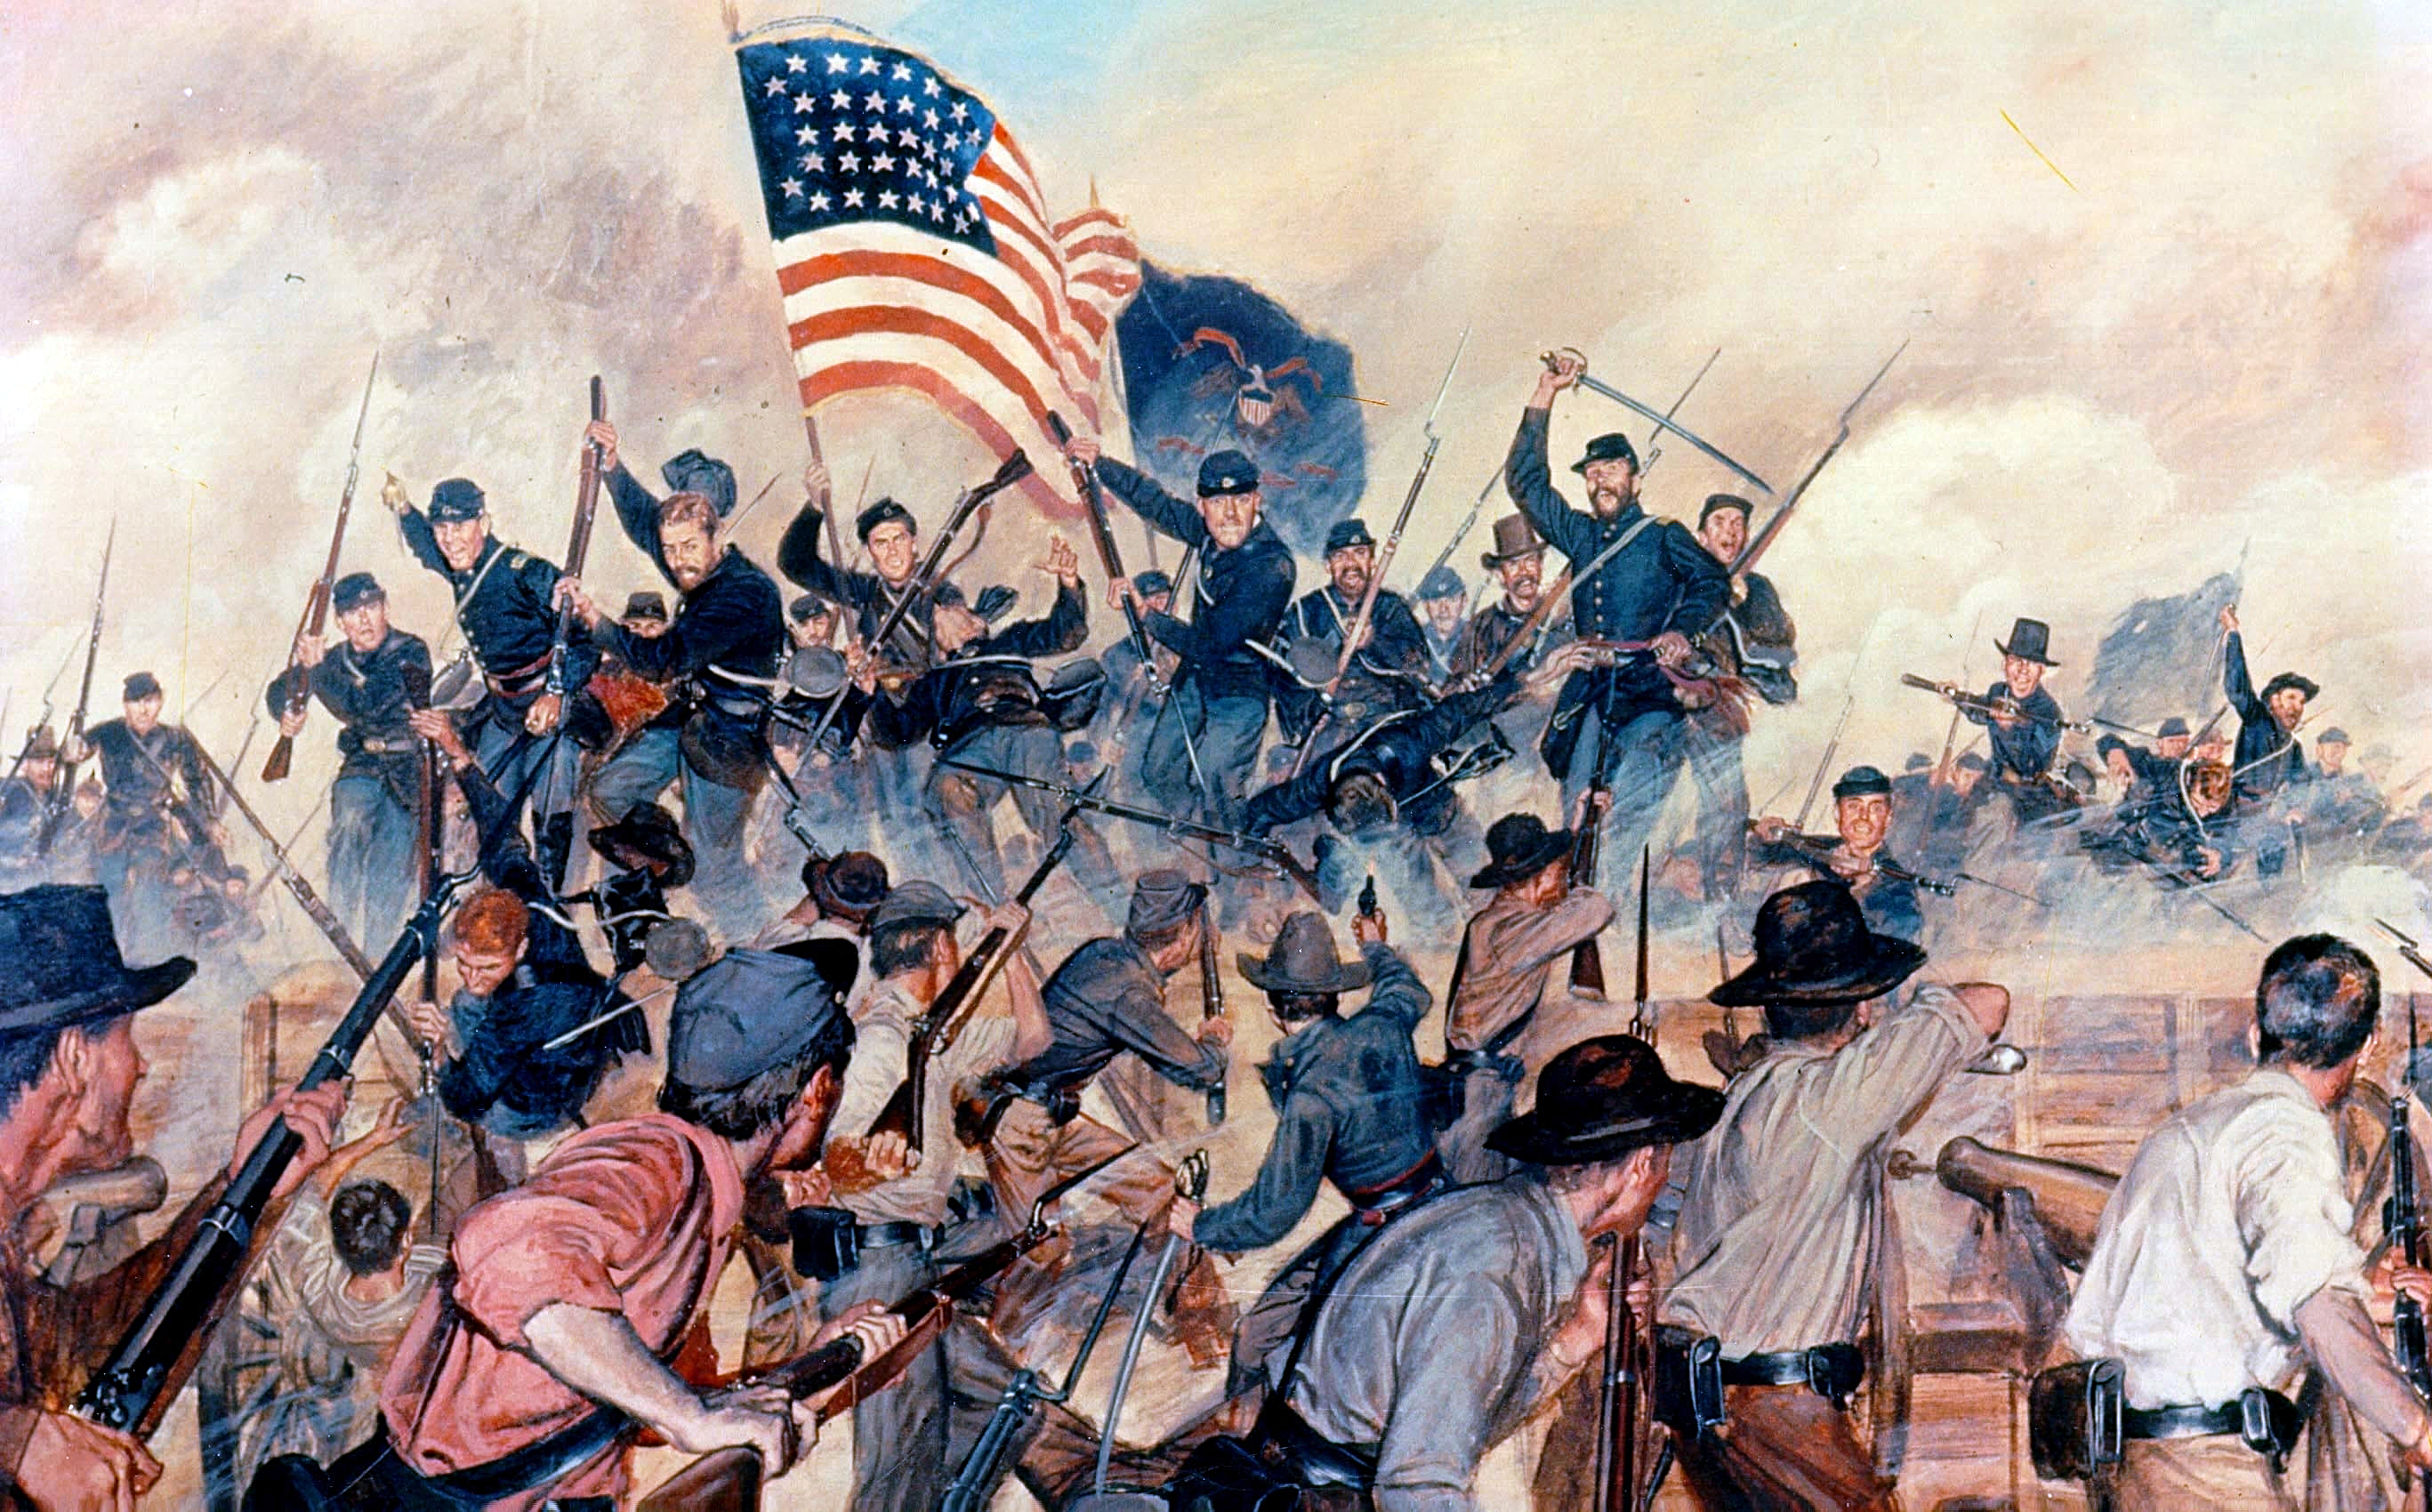 a description of the american civil war as a military conflict between the united states of america The american civil war was fought by 11 southern states known as the confederacy and union states since president abraham lincoln and the republican party were against the expansion of slavery, the southern states declared their secession from the union.